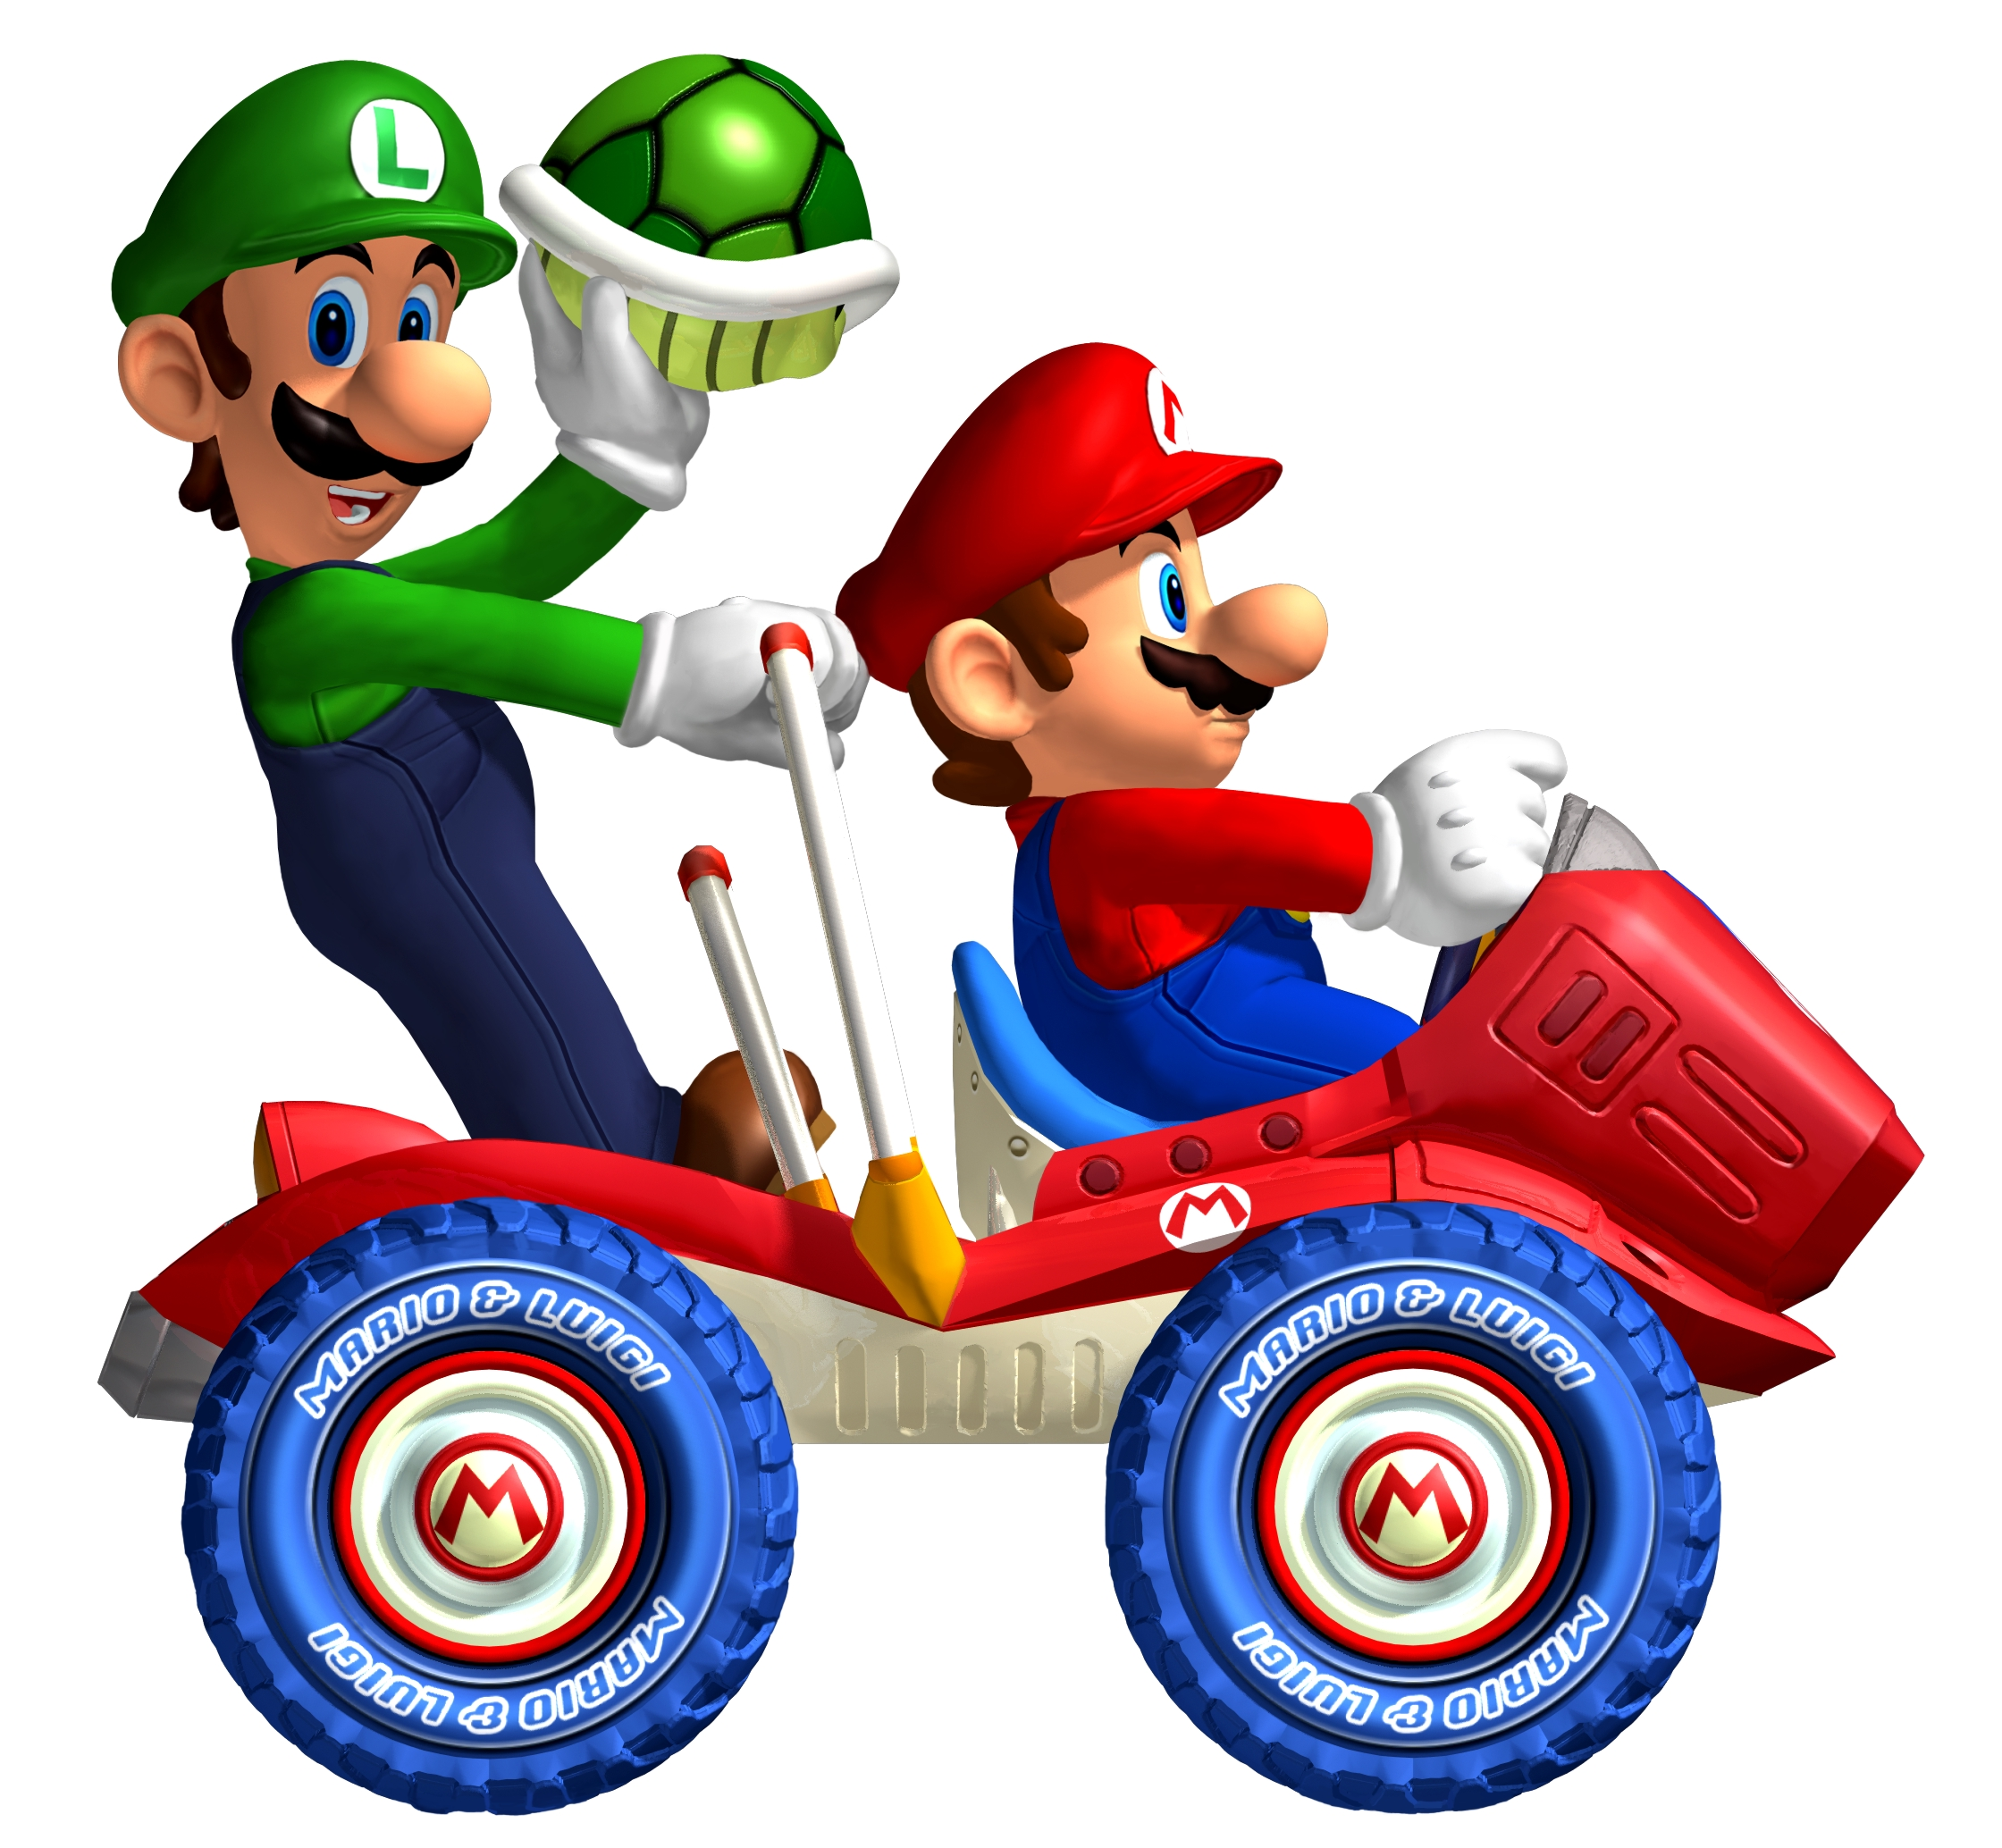 http://hddesktopwallpapers.in/wp-content/uploads/2015/11/mario-kart-8-wallpaper-A6.jpg